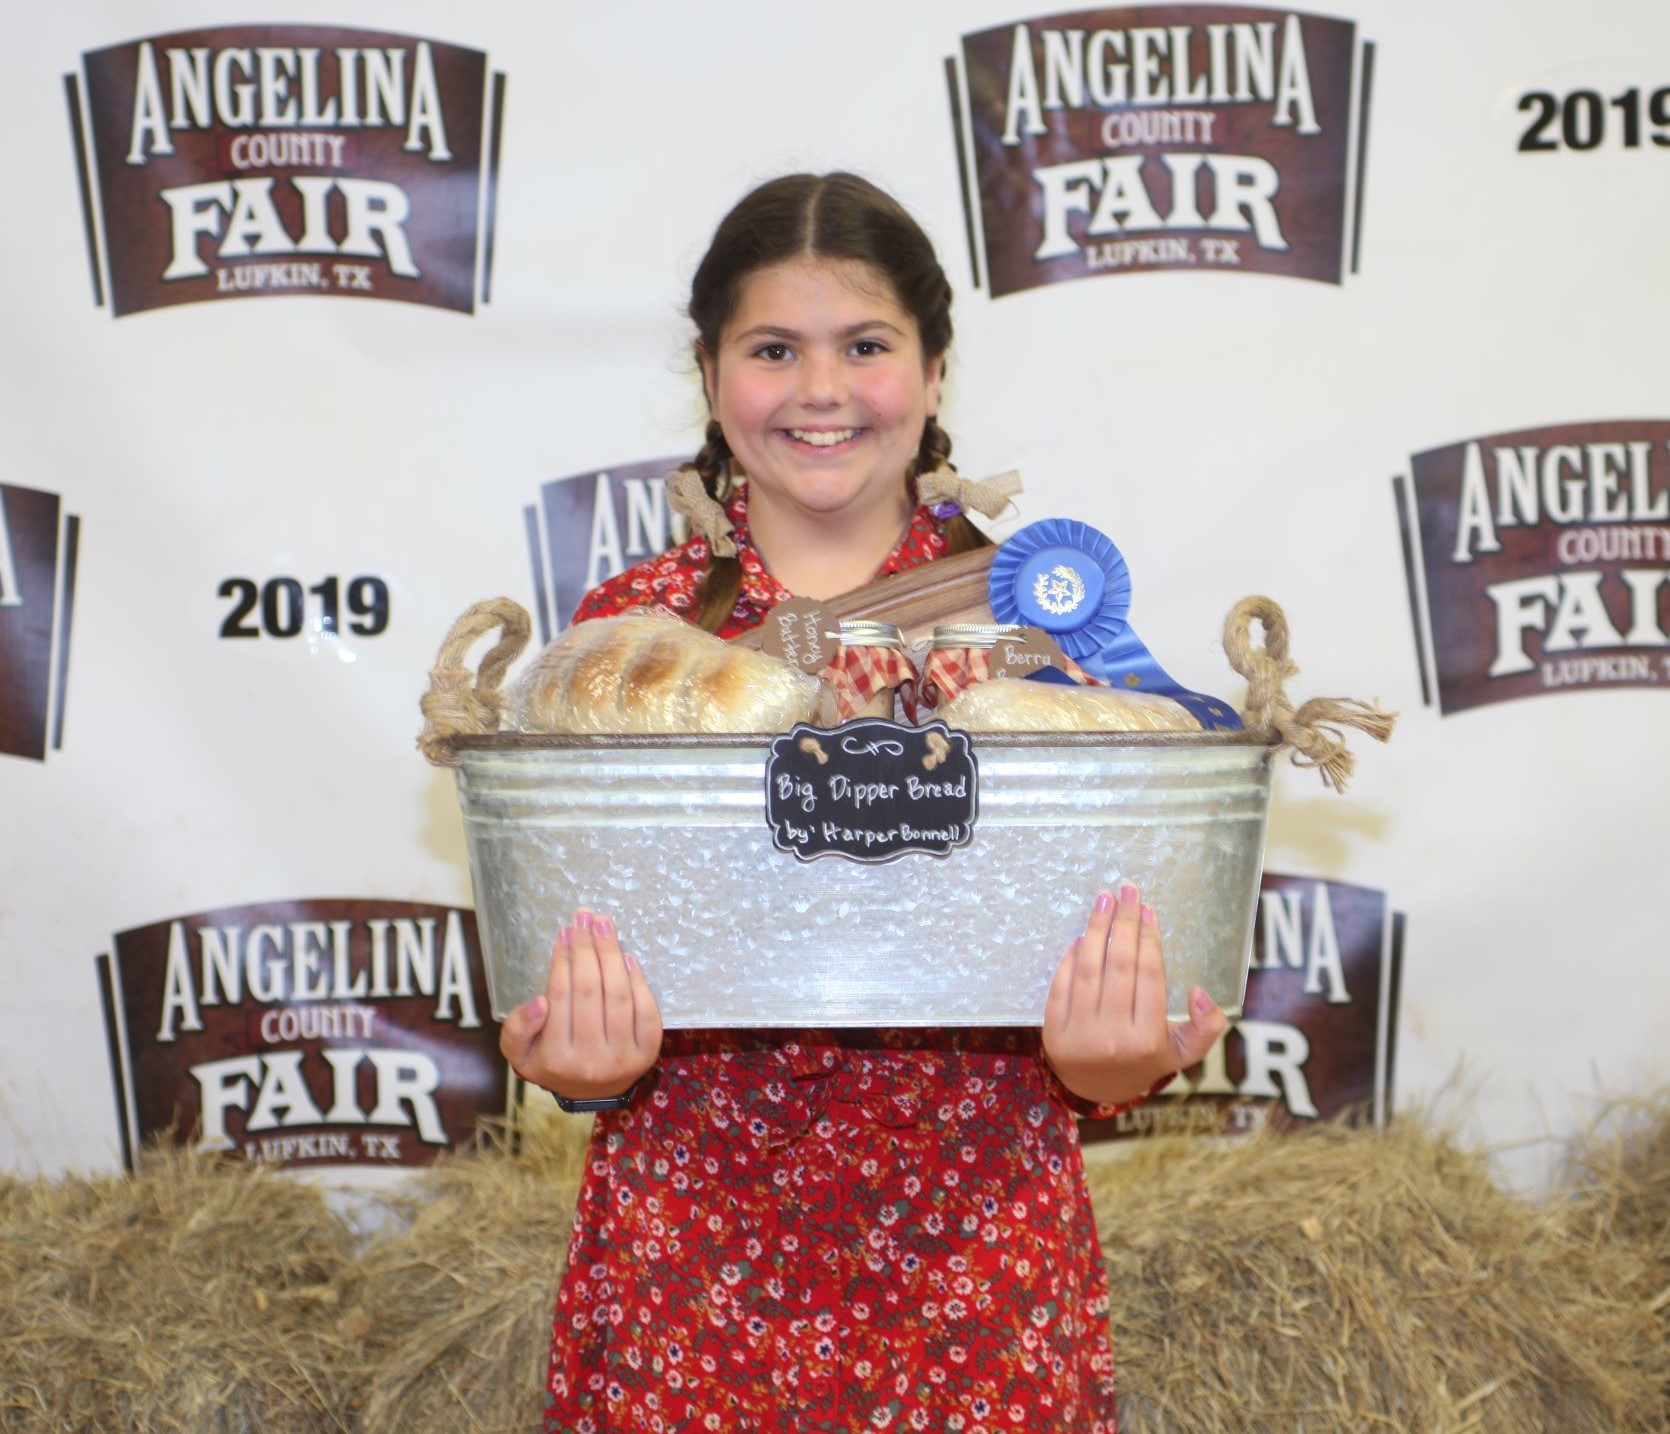 Harper Bonnell, Blue Ribbon 4-H